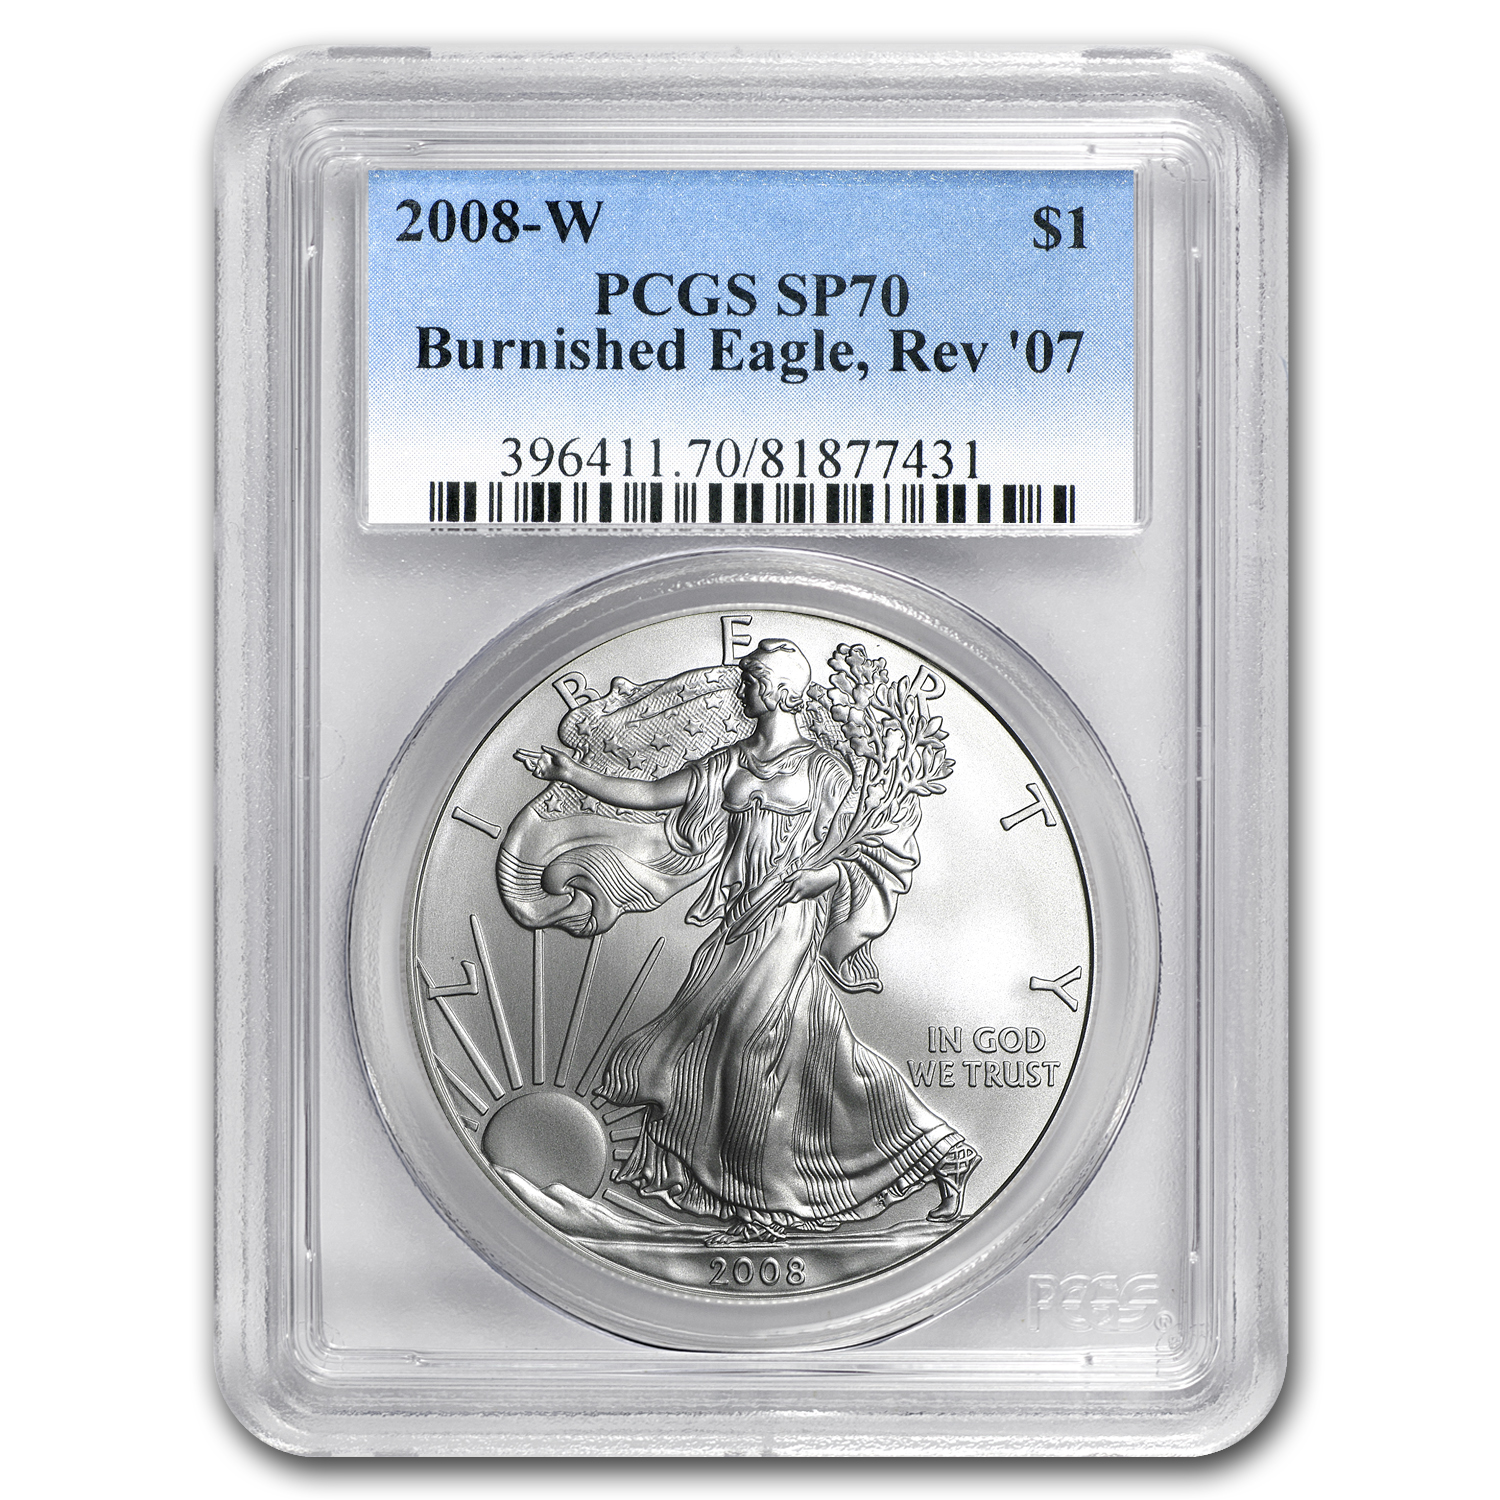 2008-W Burnished Silver American Eagle MS-70 PCGS (Rev '07)